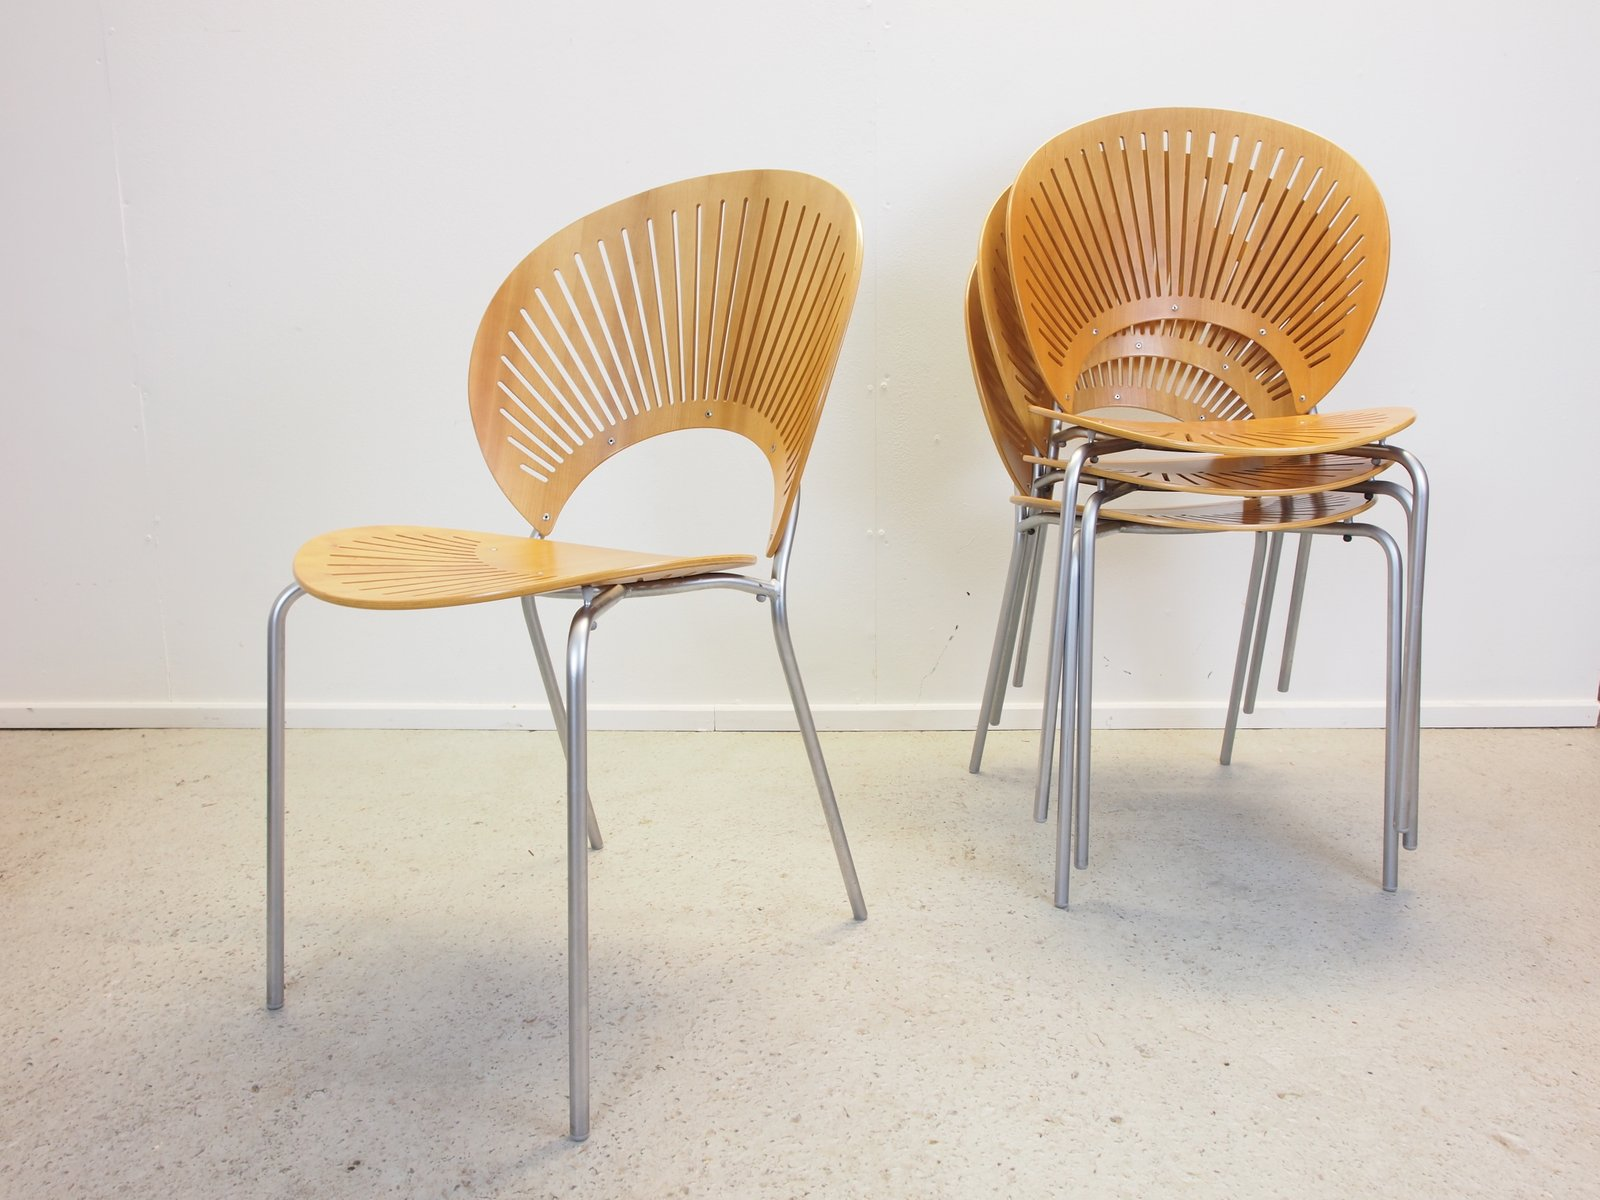 Vintage trinidad chairs by nanna ditzel for frederica set